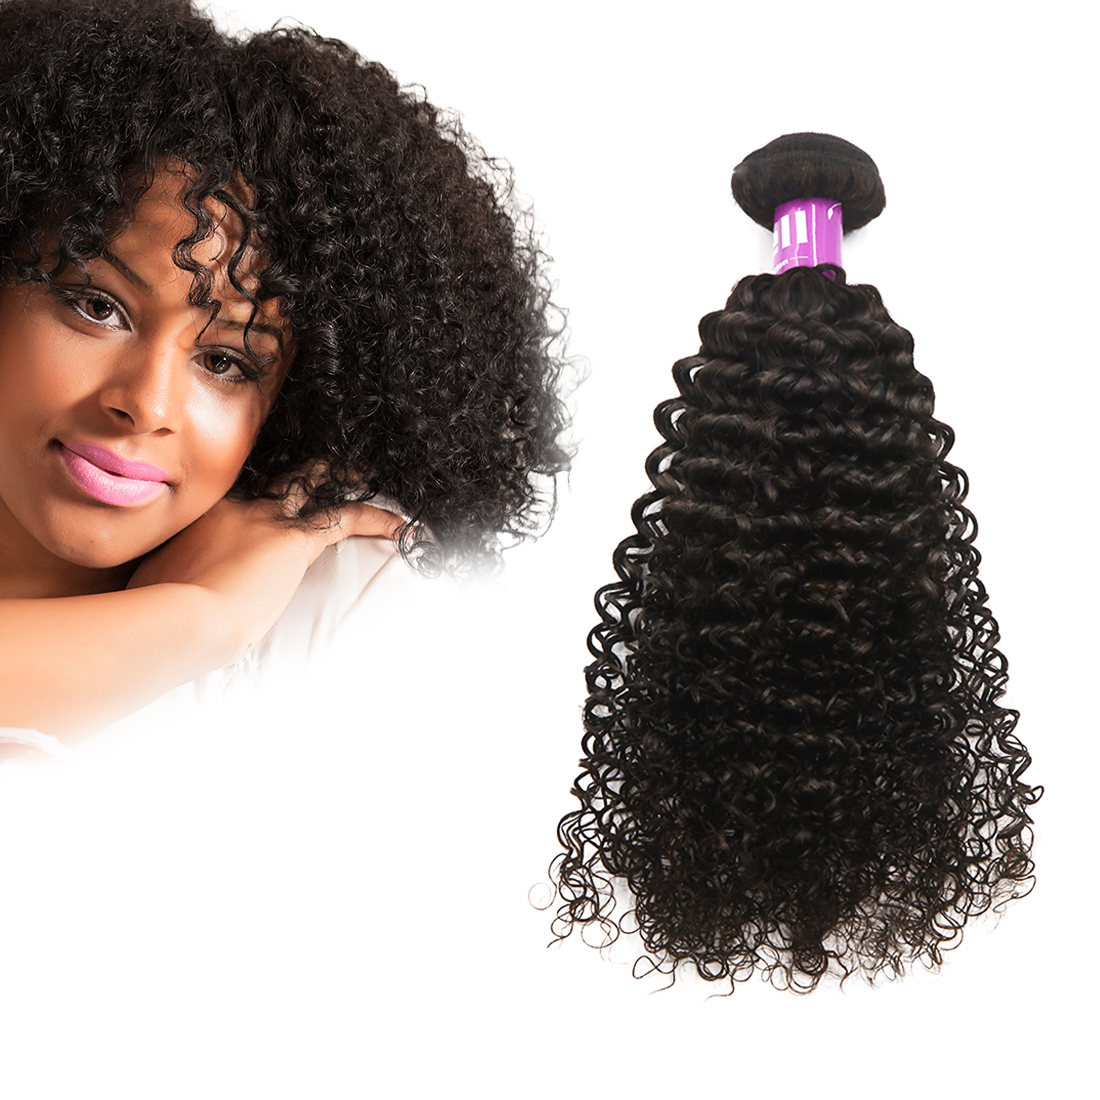 "Peruvian Unprocessed Virgin Italian Curly Human Hair Extensions Wave 12"" 1 Bundle"